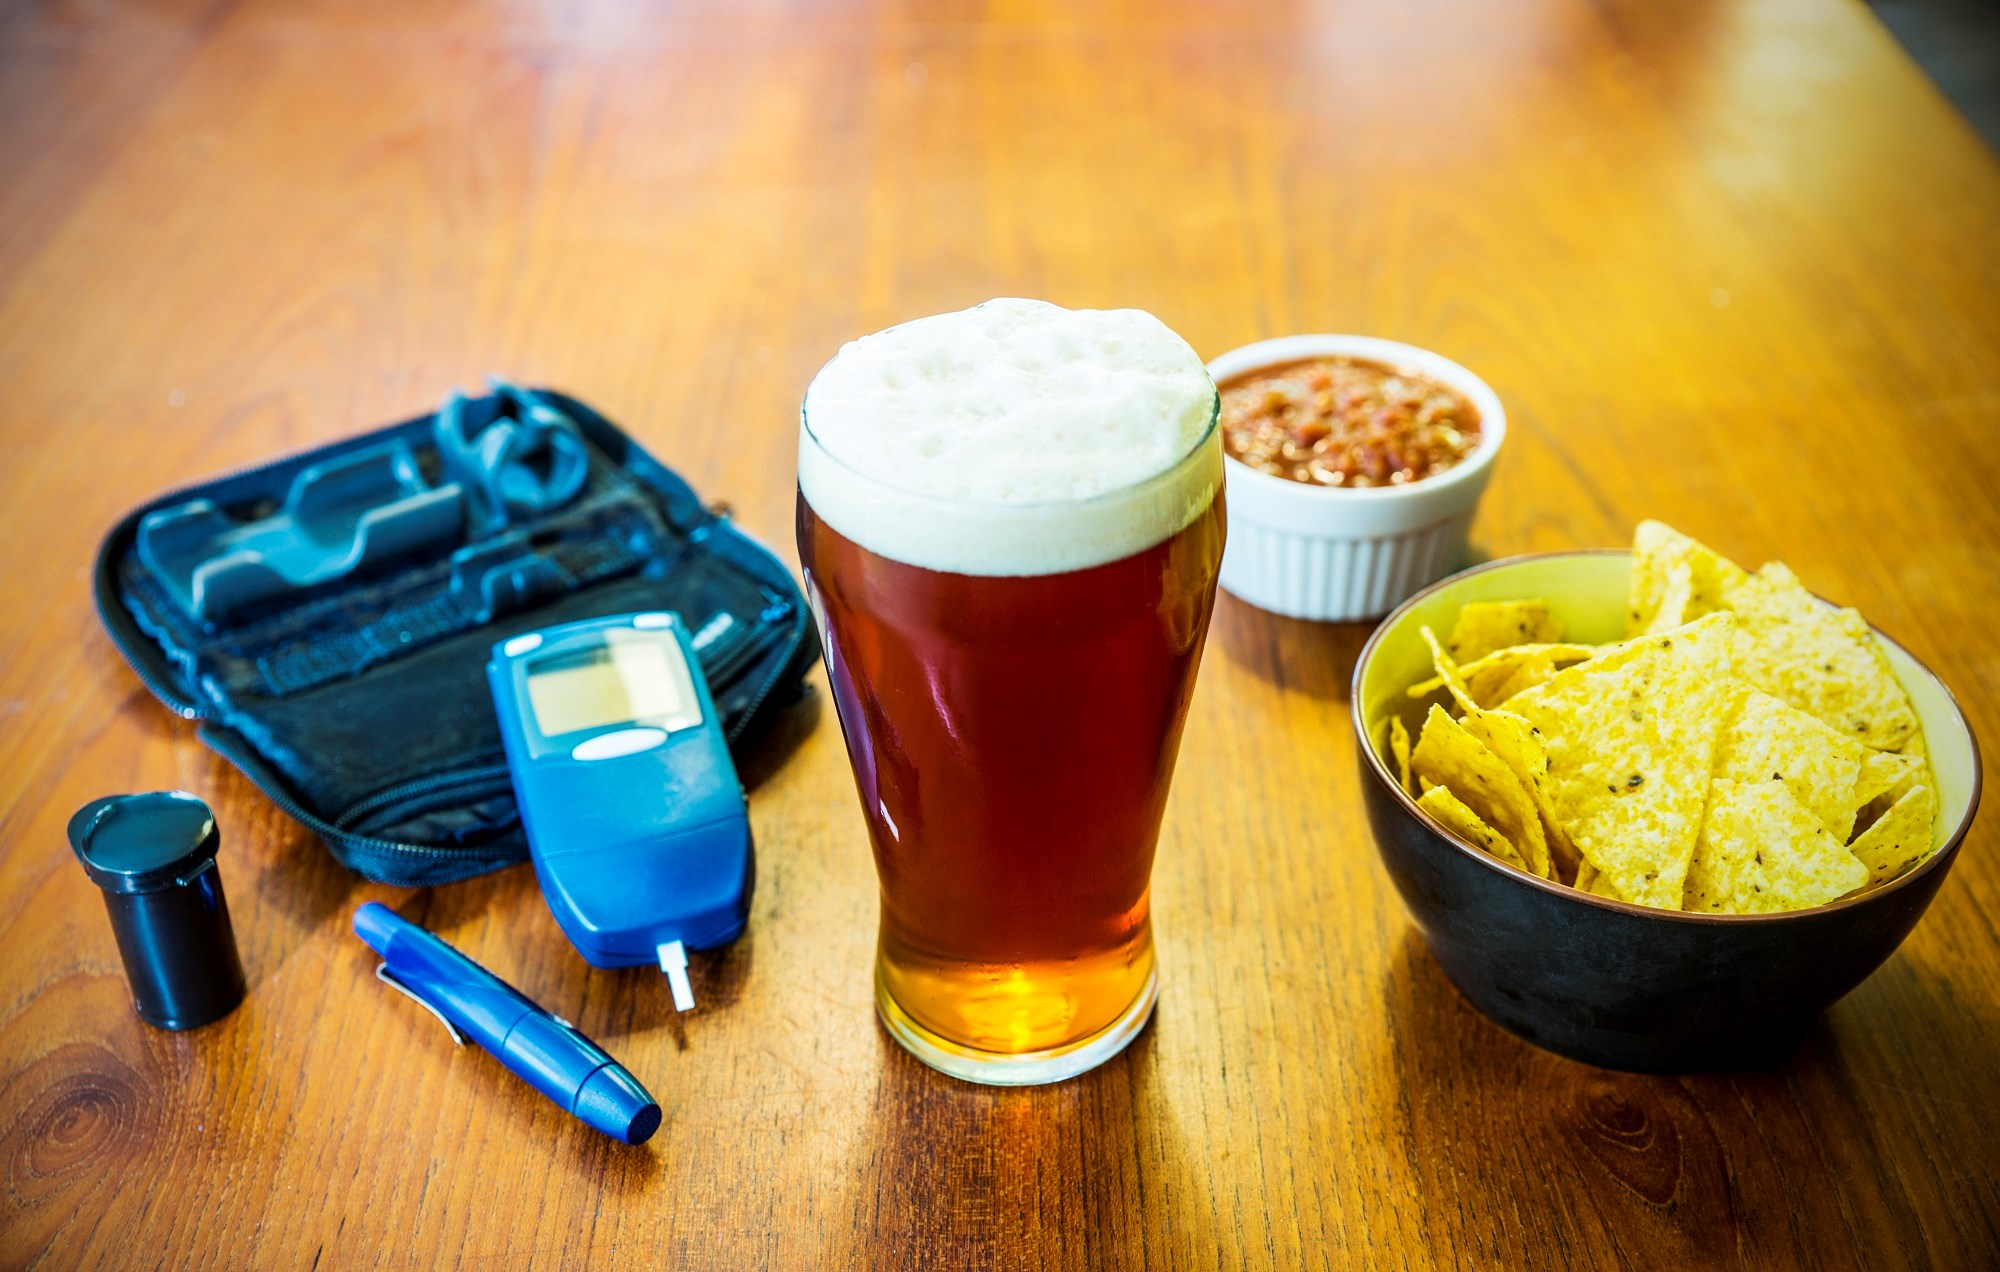 Patients With Diabetes Have Higher Risk for Death From Alcohol, Accidents, Suicide